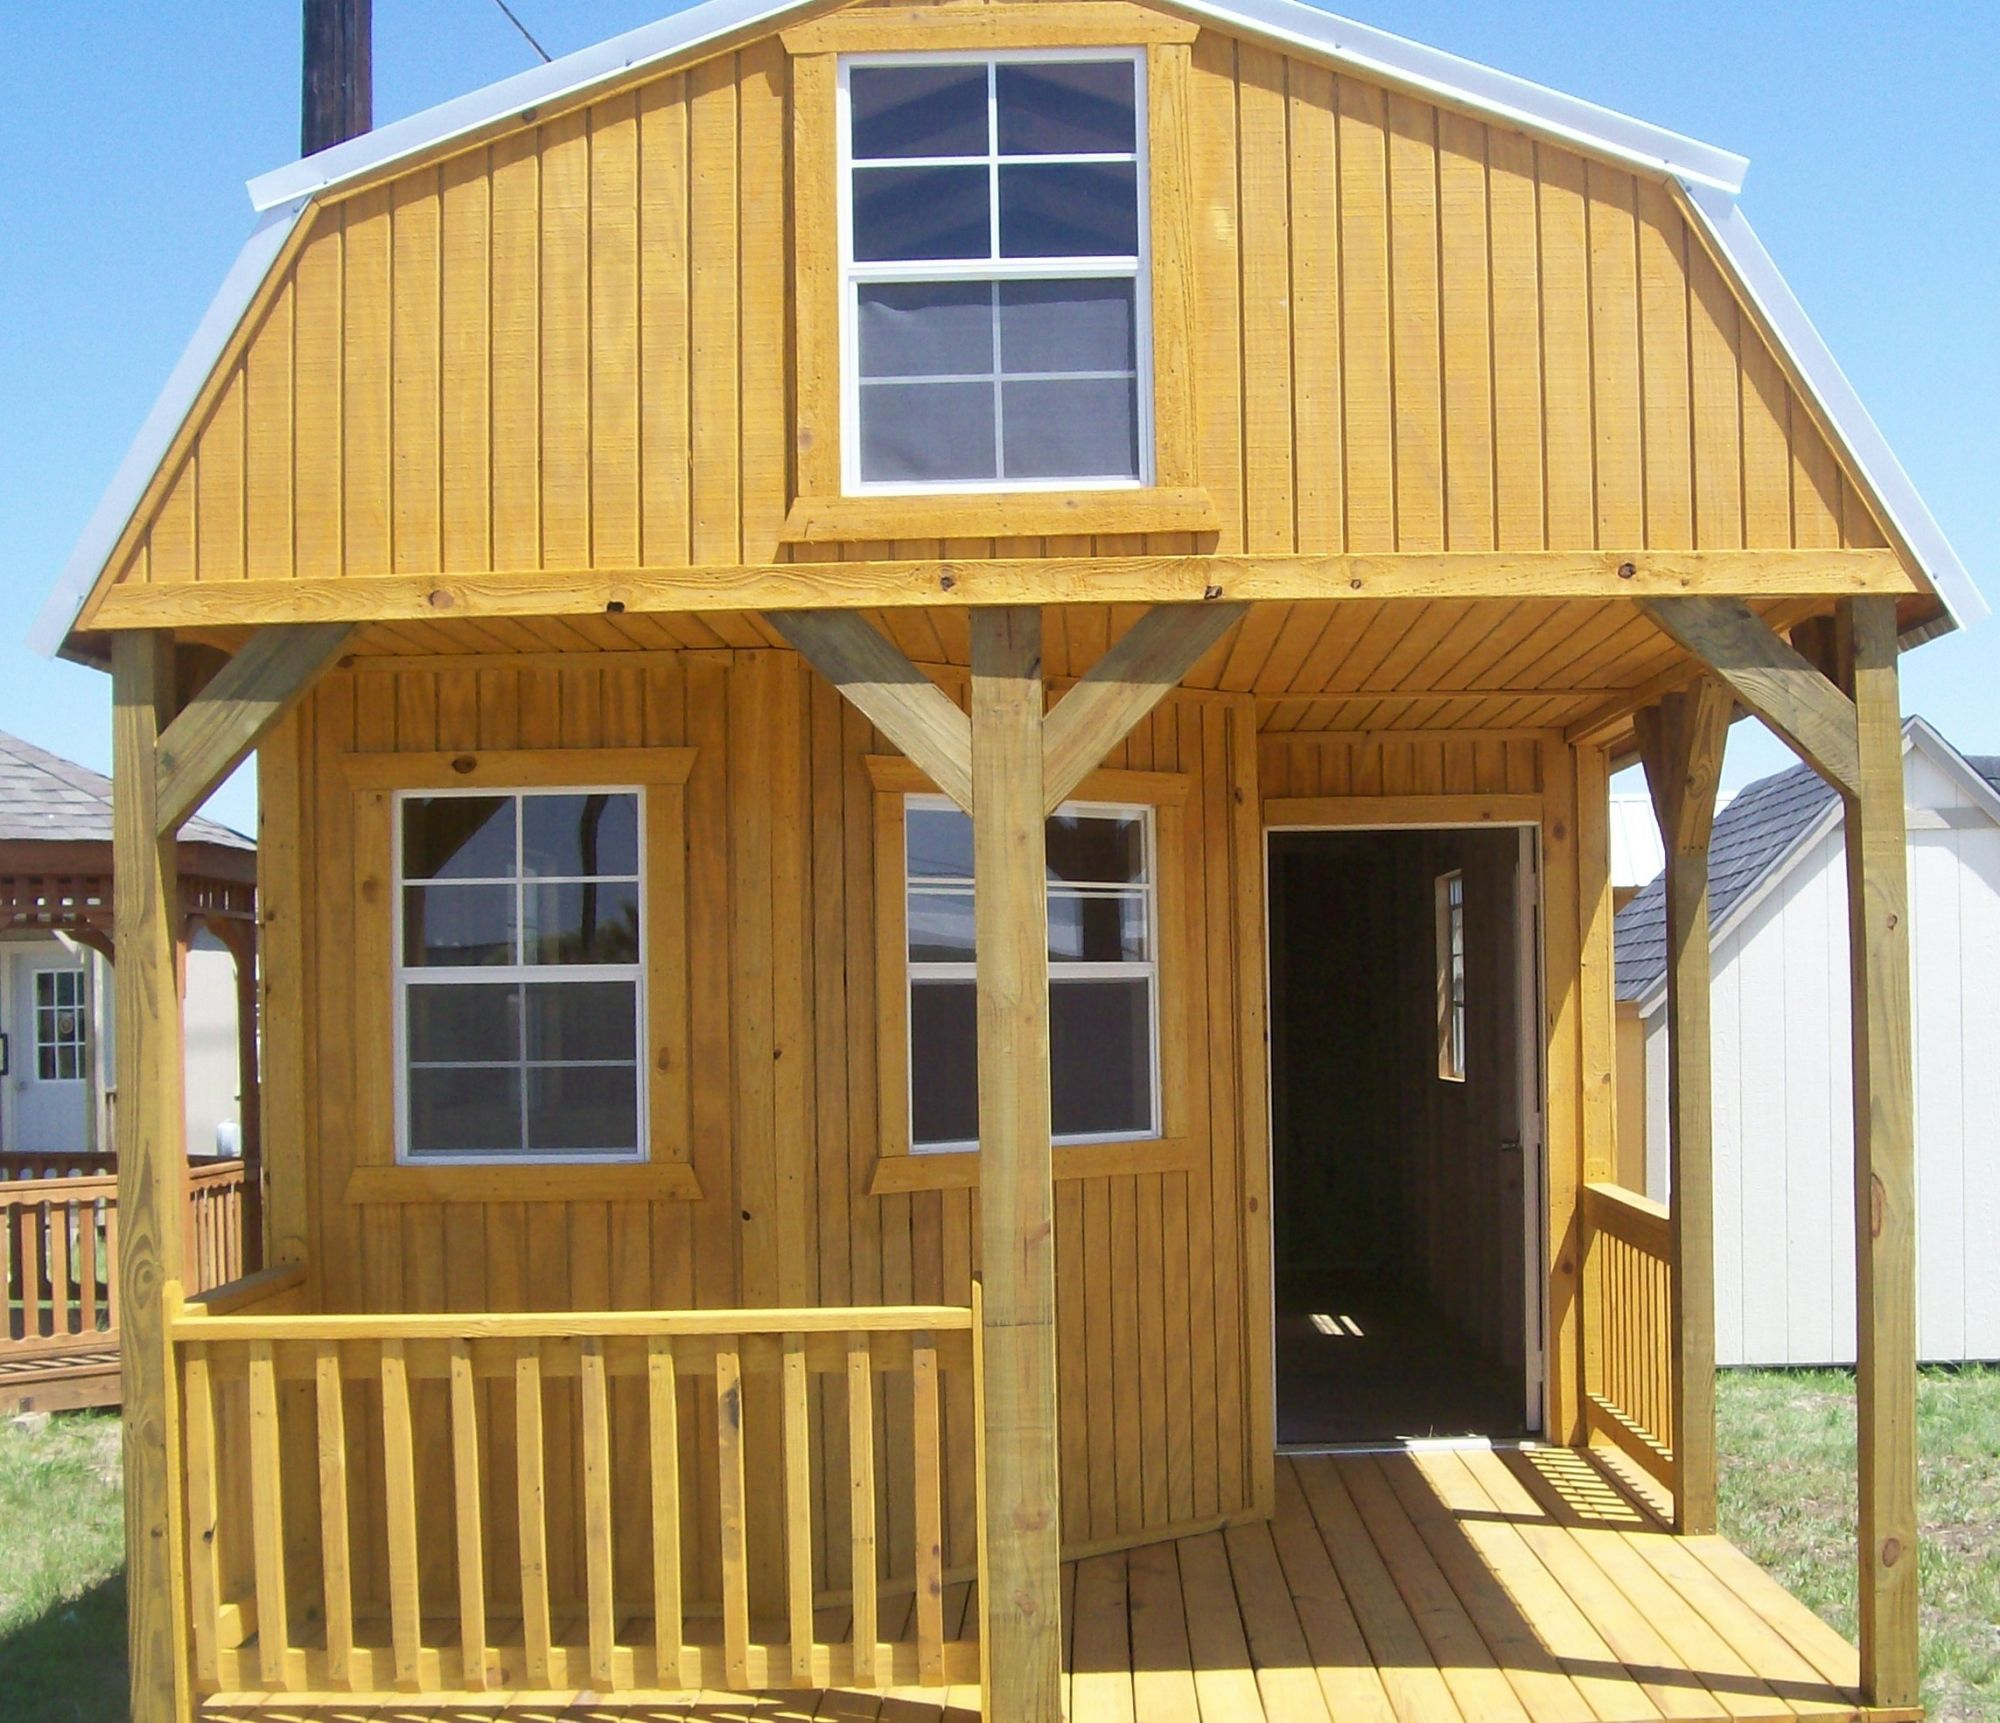 14x32 lofted cabin plans Google Search Cabins